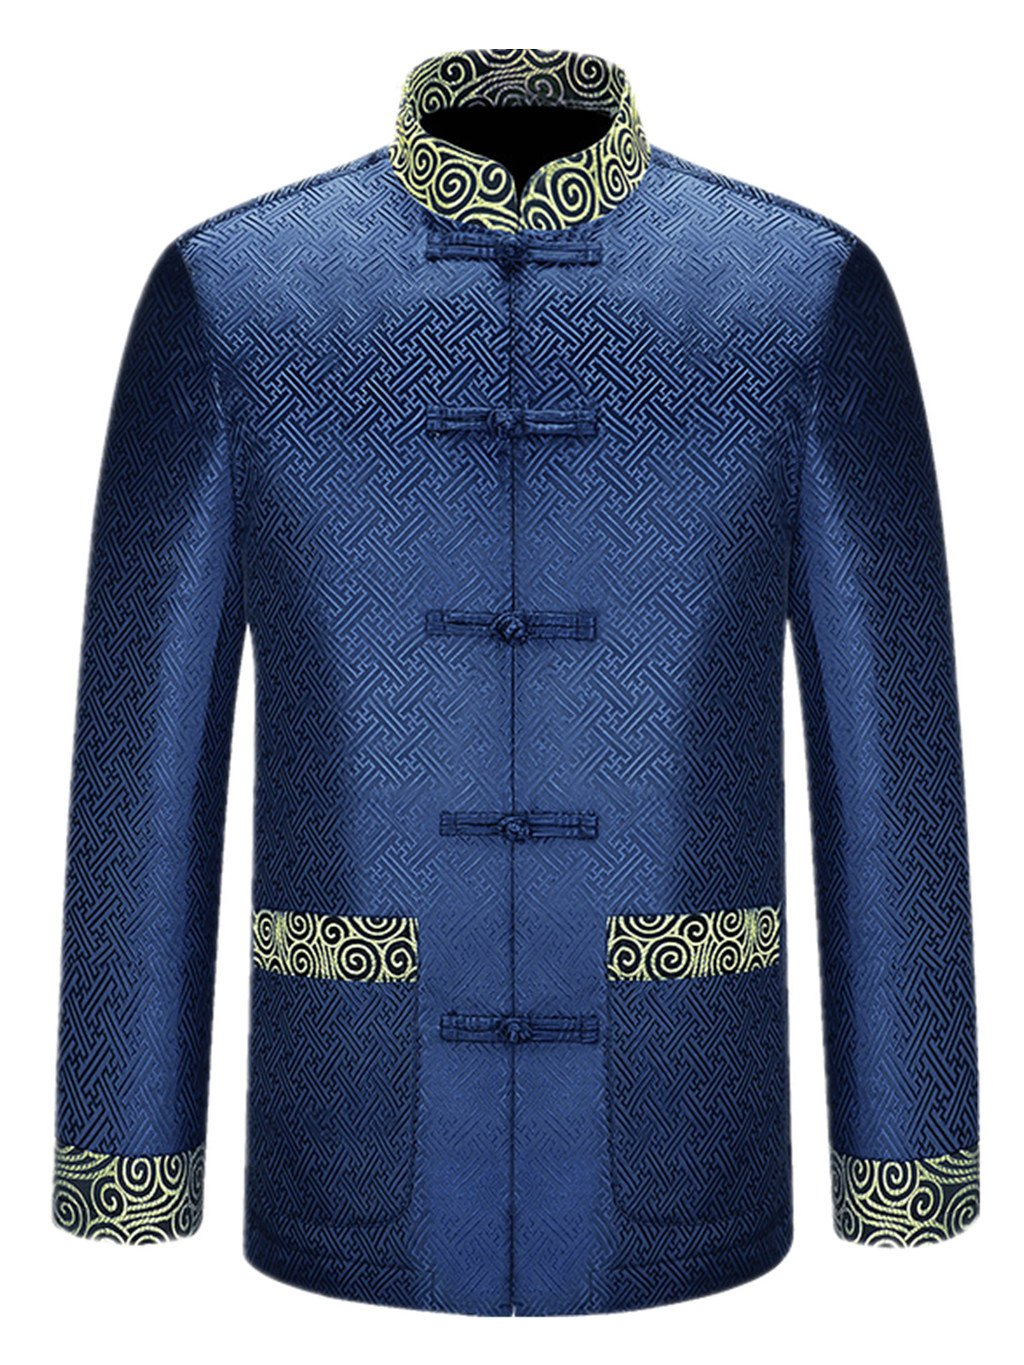 High-end Tang Suit National Costume Individuality Retro Jackets Coats Men's Dress Full Dress (purple)